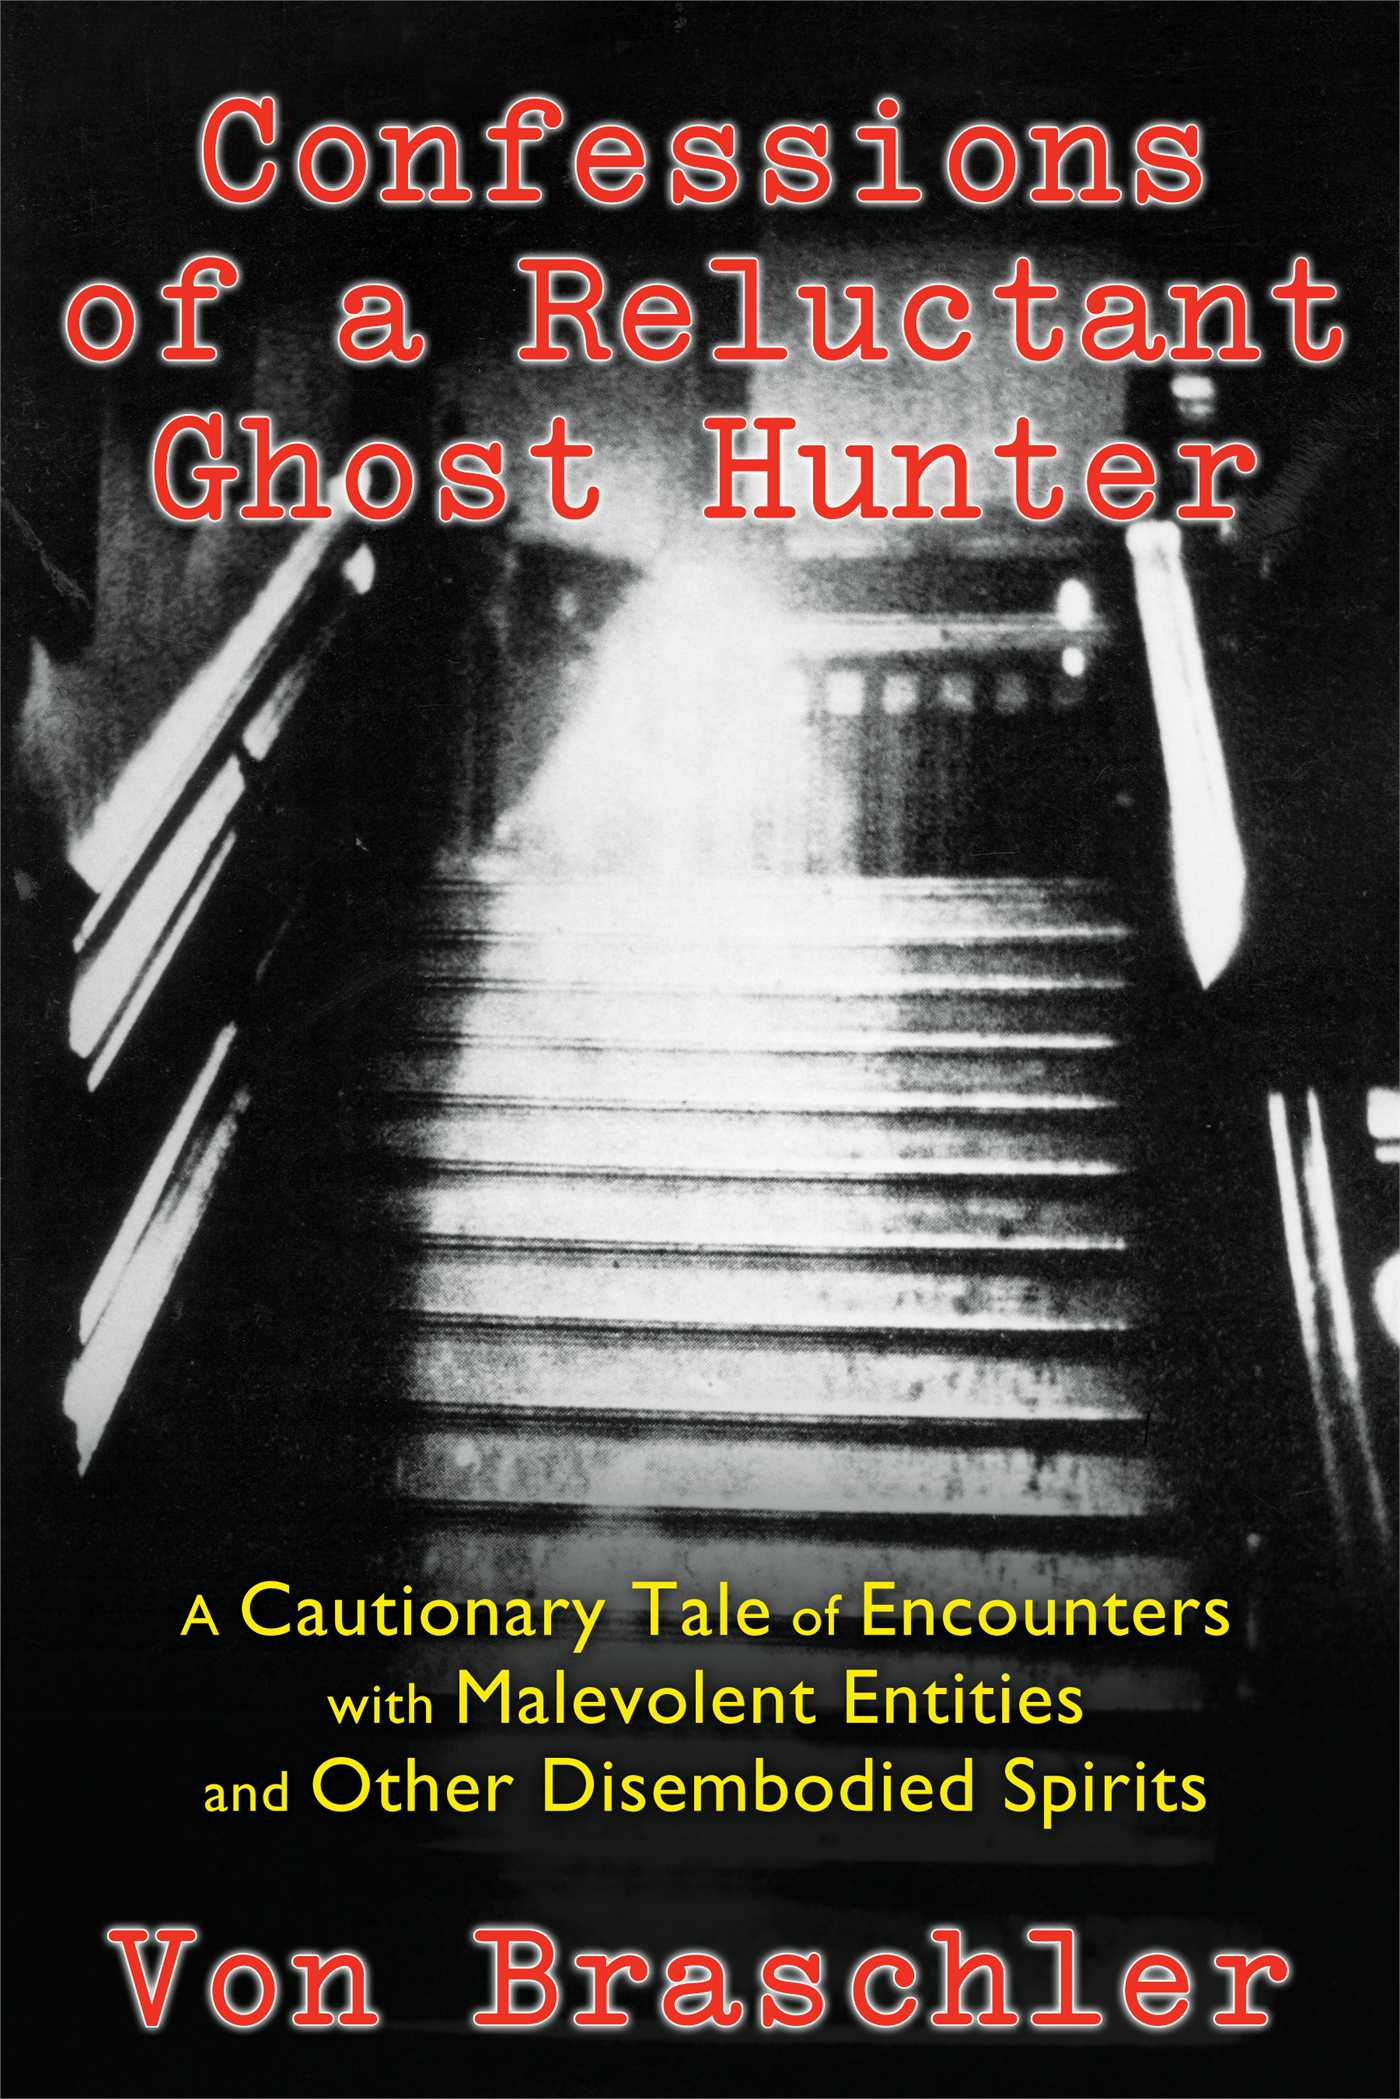 Confessions-of-a-reluctant-ghost-hunter-9781620553824_hr